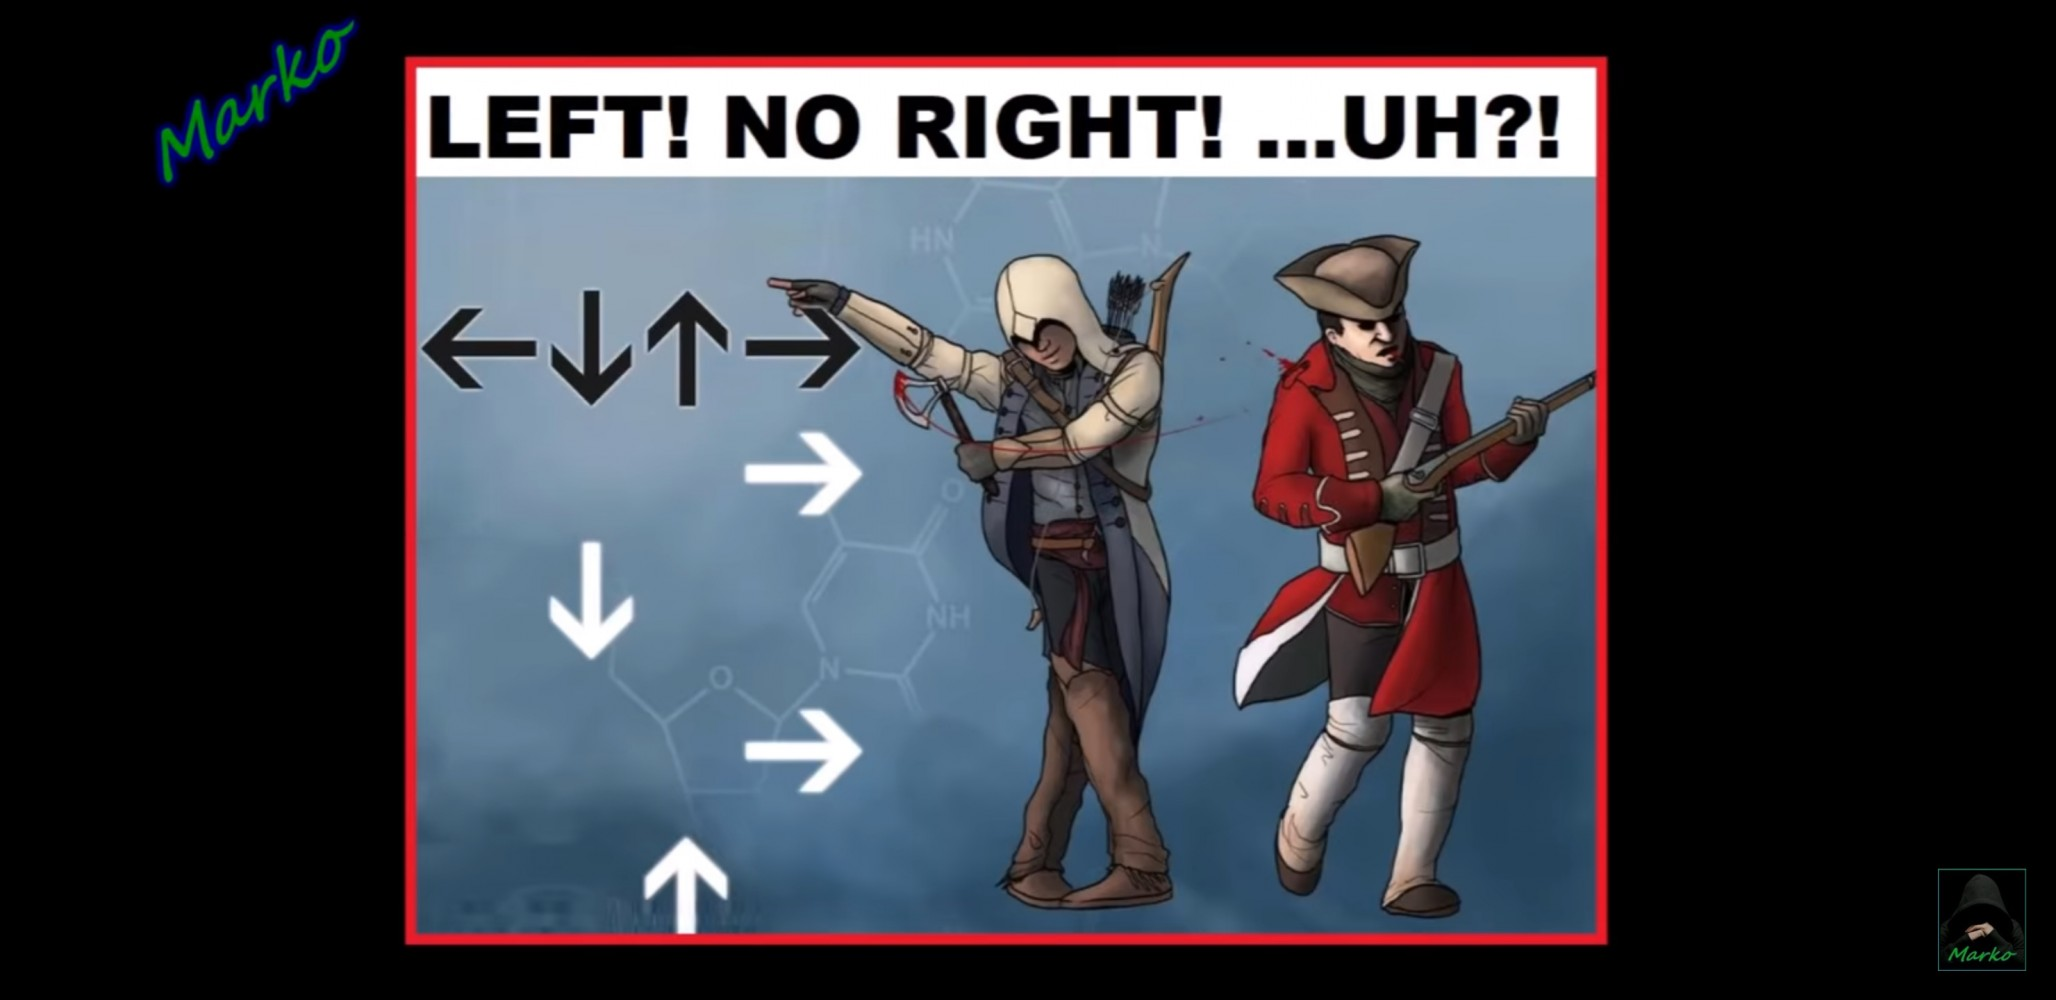 Pixilart Assassin S Creed Meme 4 Uploaded By Drdewgong